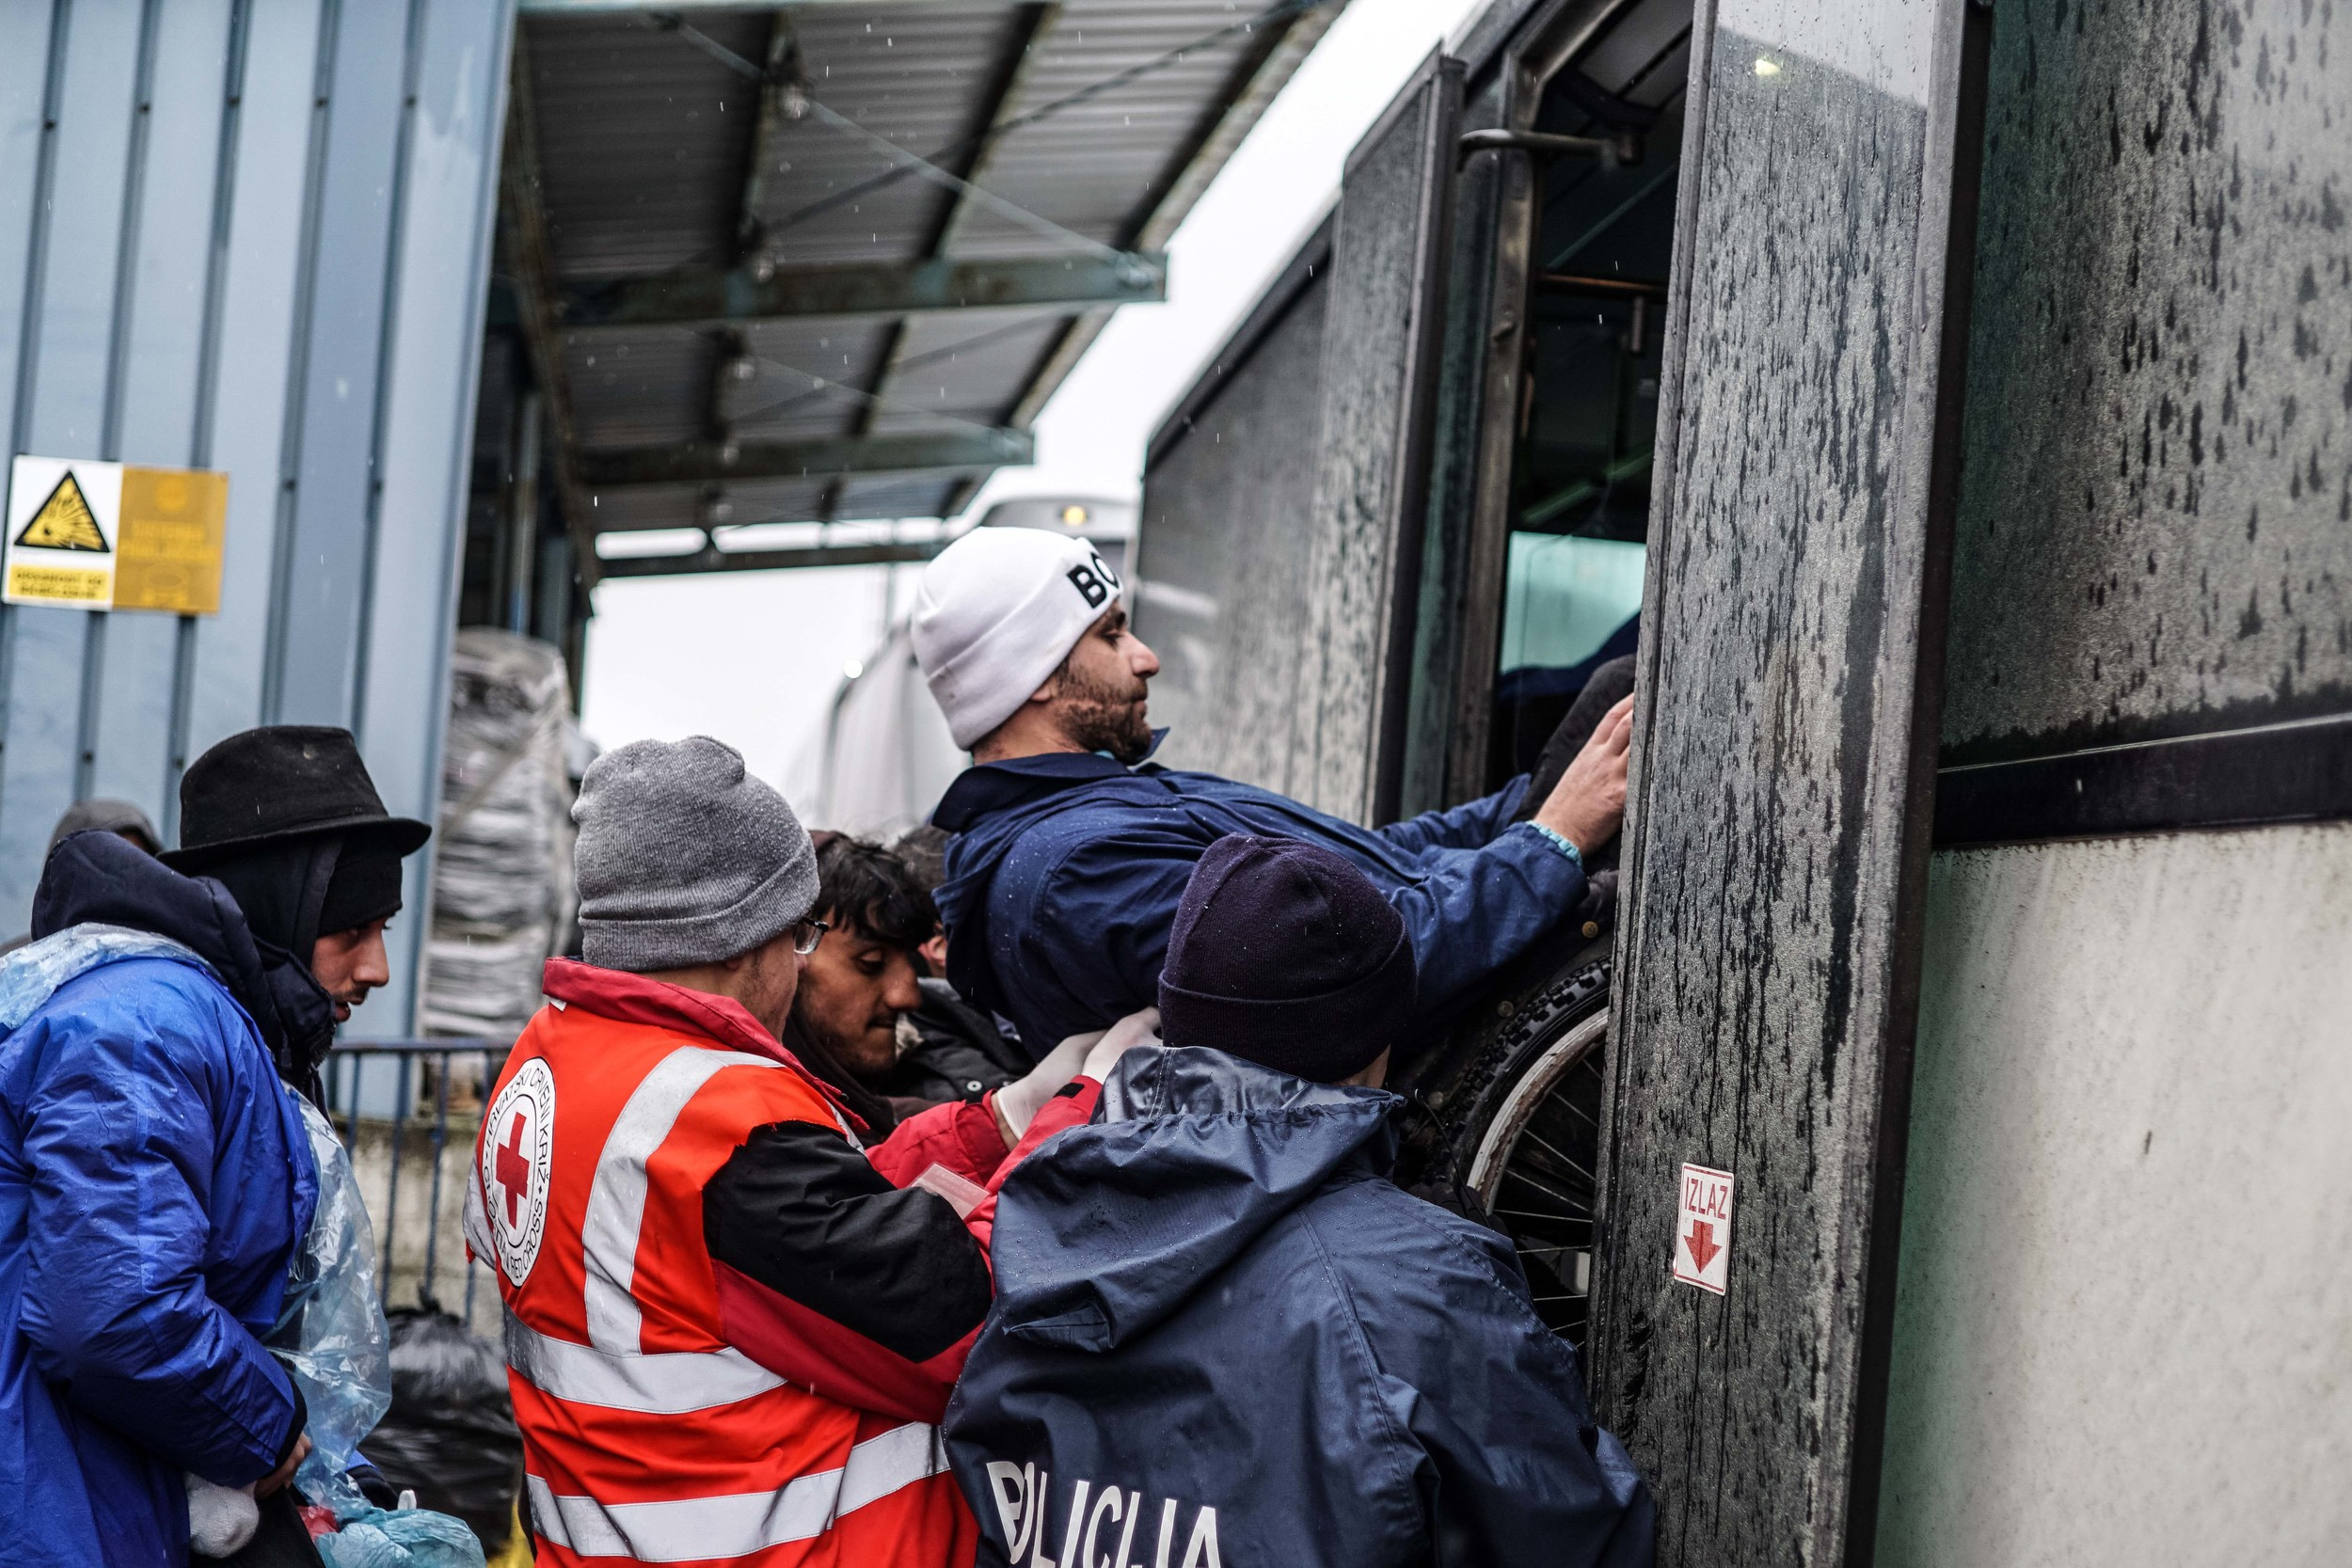 Syrian Refugee Crisis Croatia Slavonski Brod Winter Refugee Camp November 2015 3.jpg